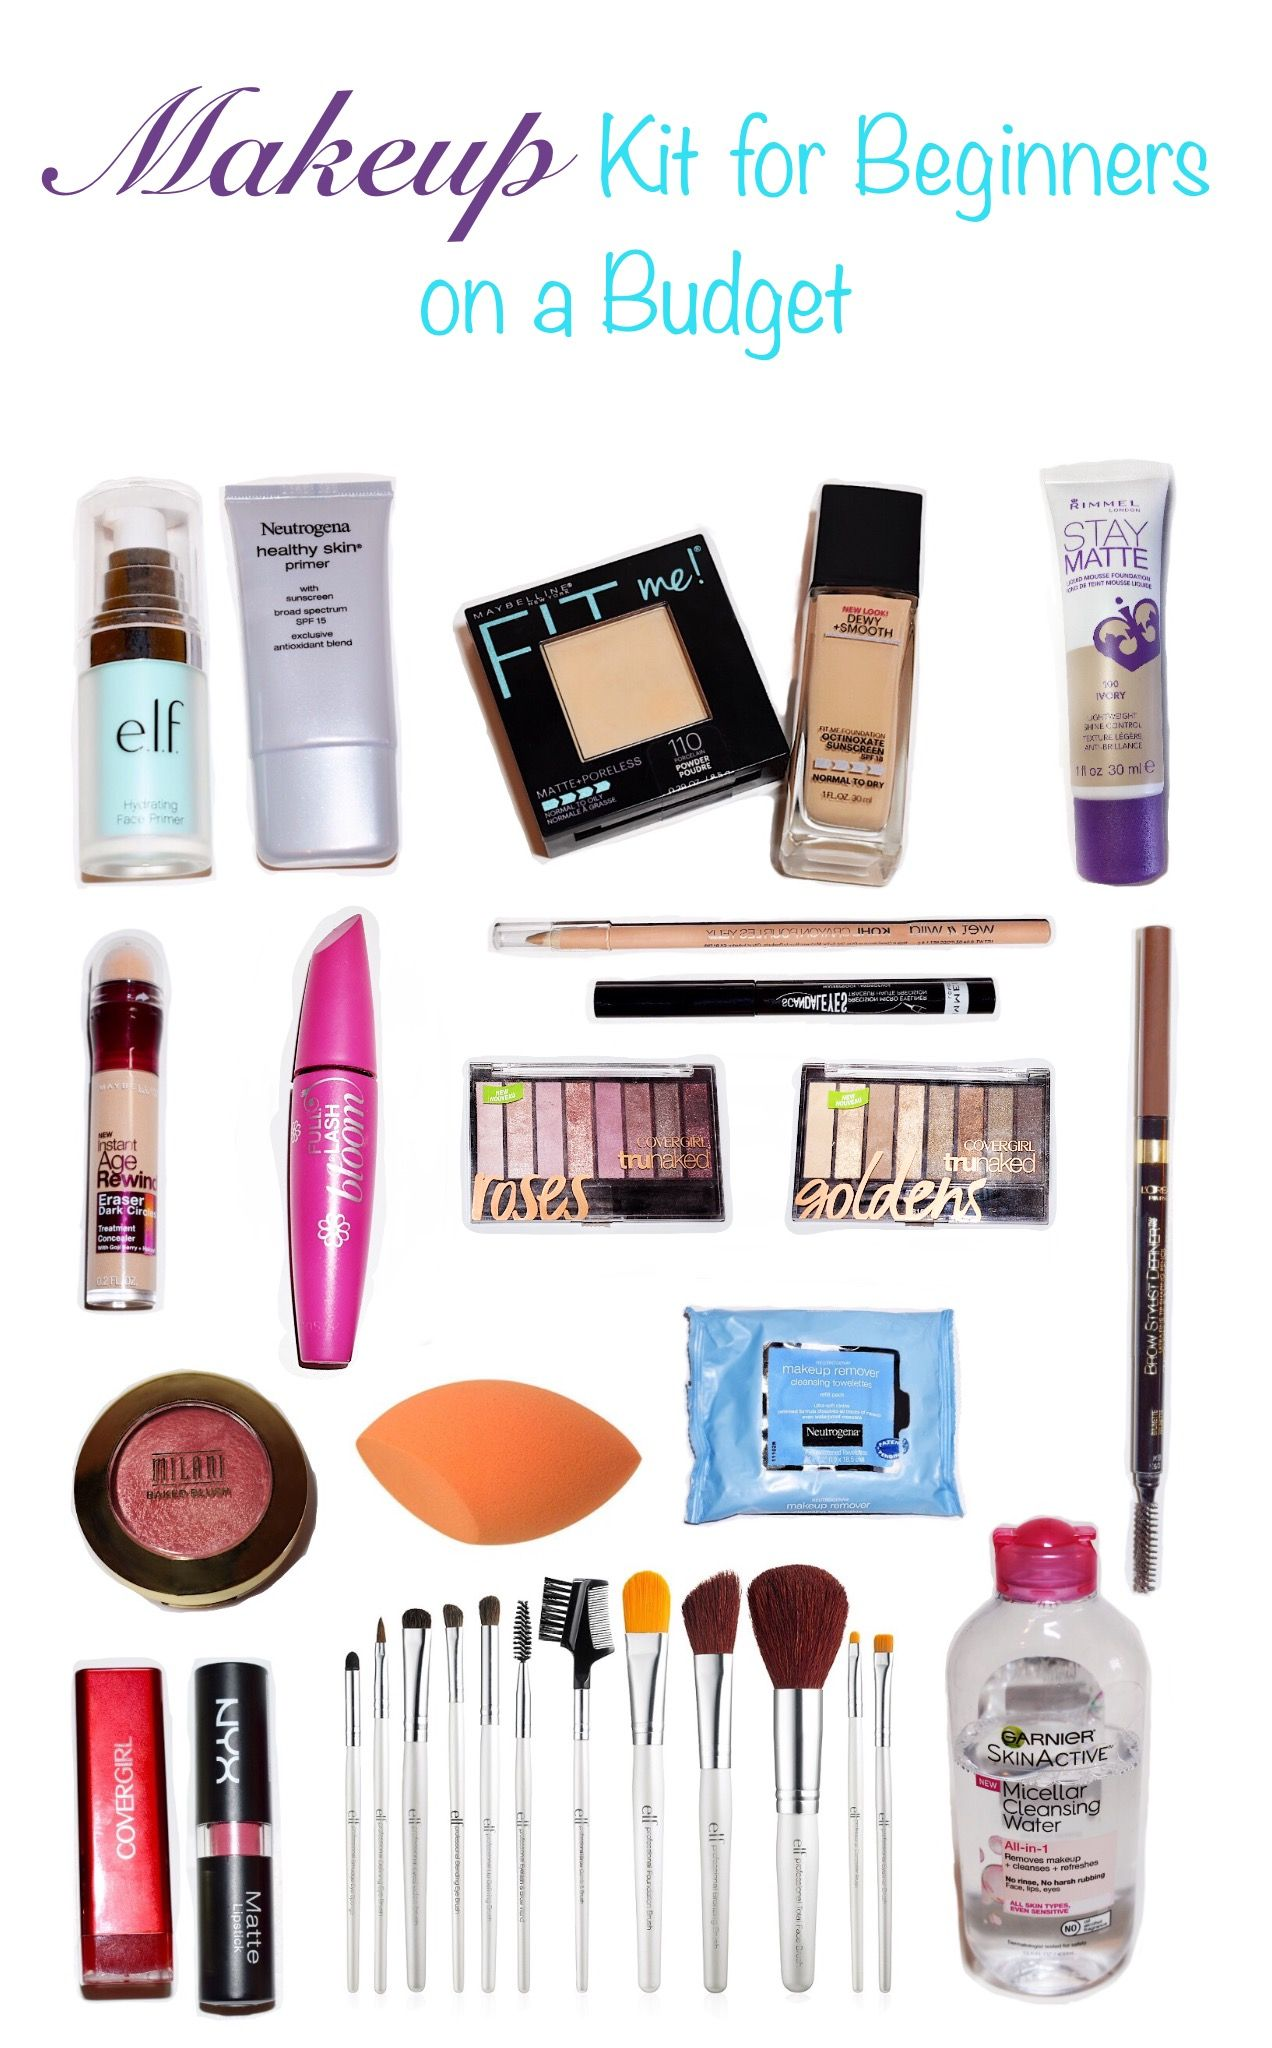 Makeup Kit for Beginners on a Budget Beauty Budget Girl